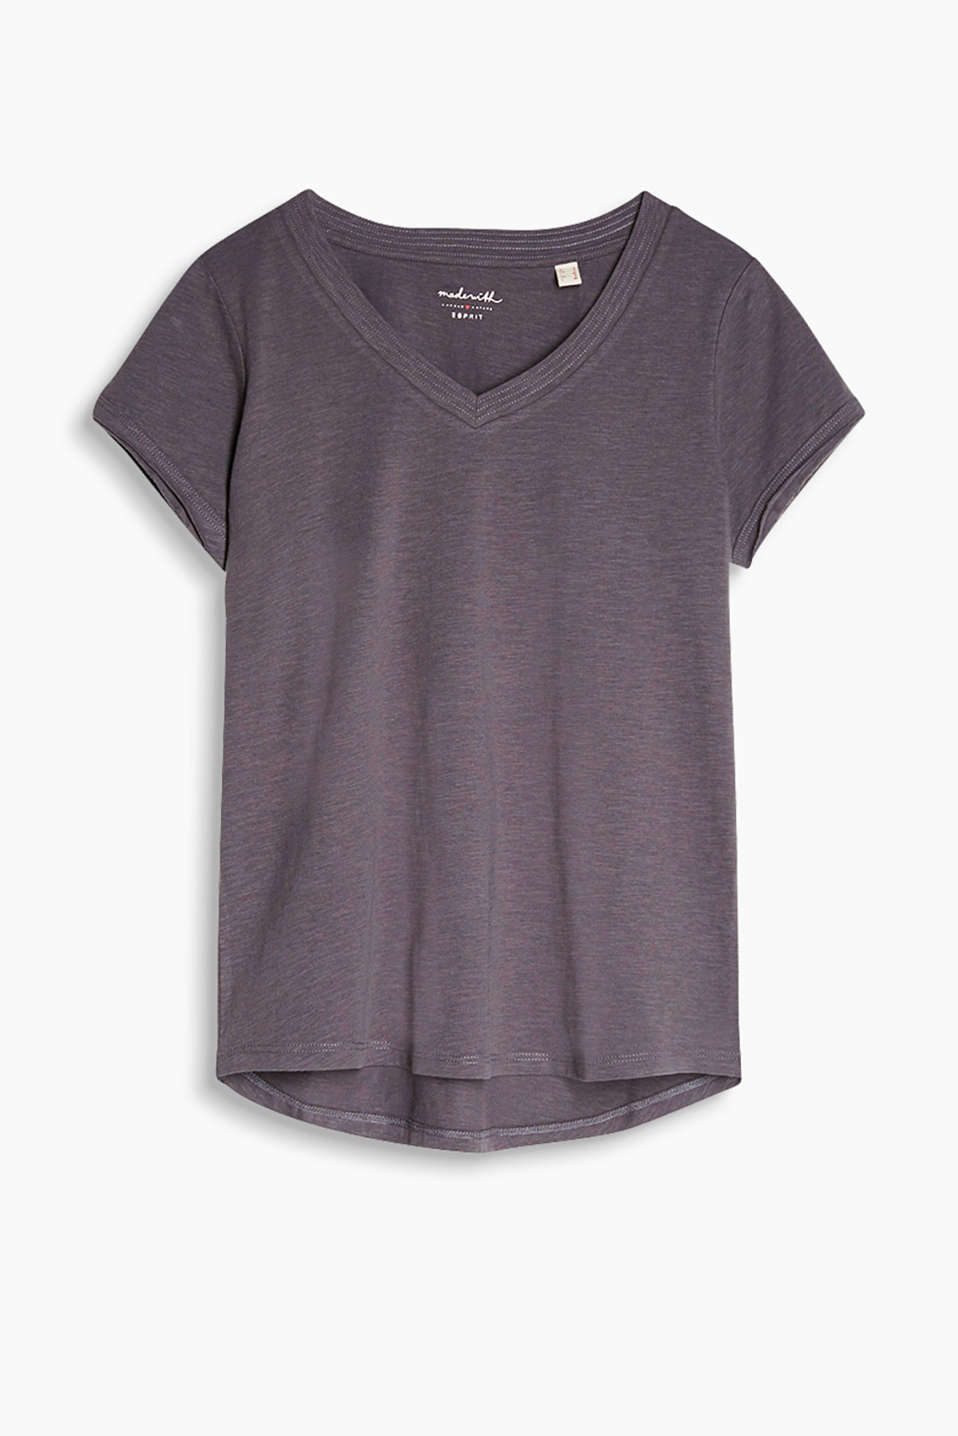 Airy slub jersey T-shirt with a fine texture and generous V-neck, 100% cotton